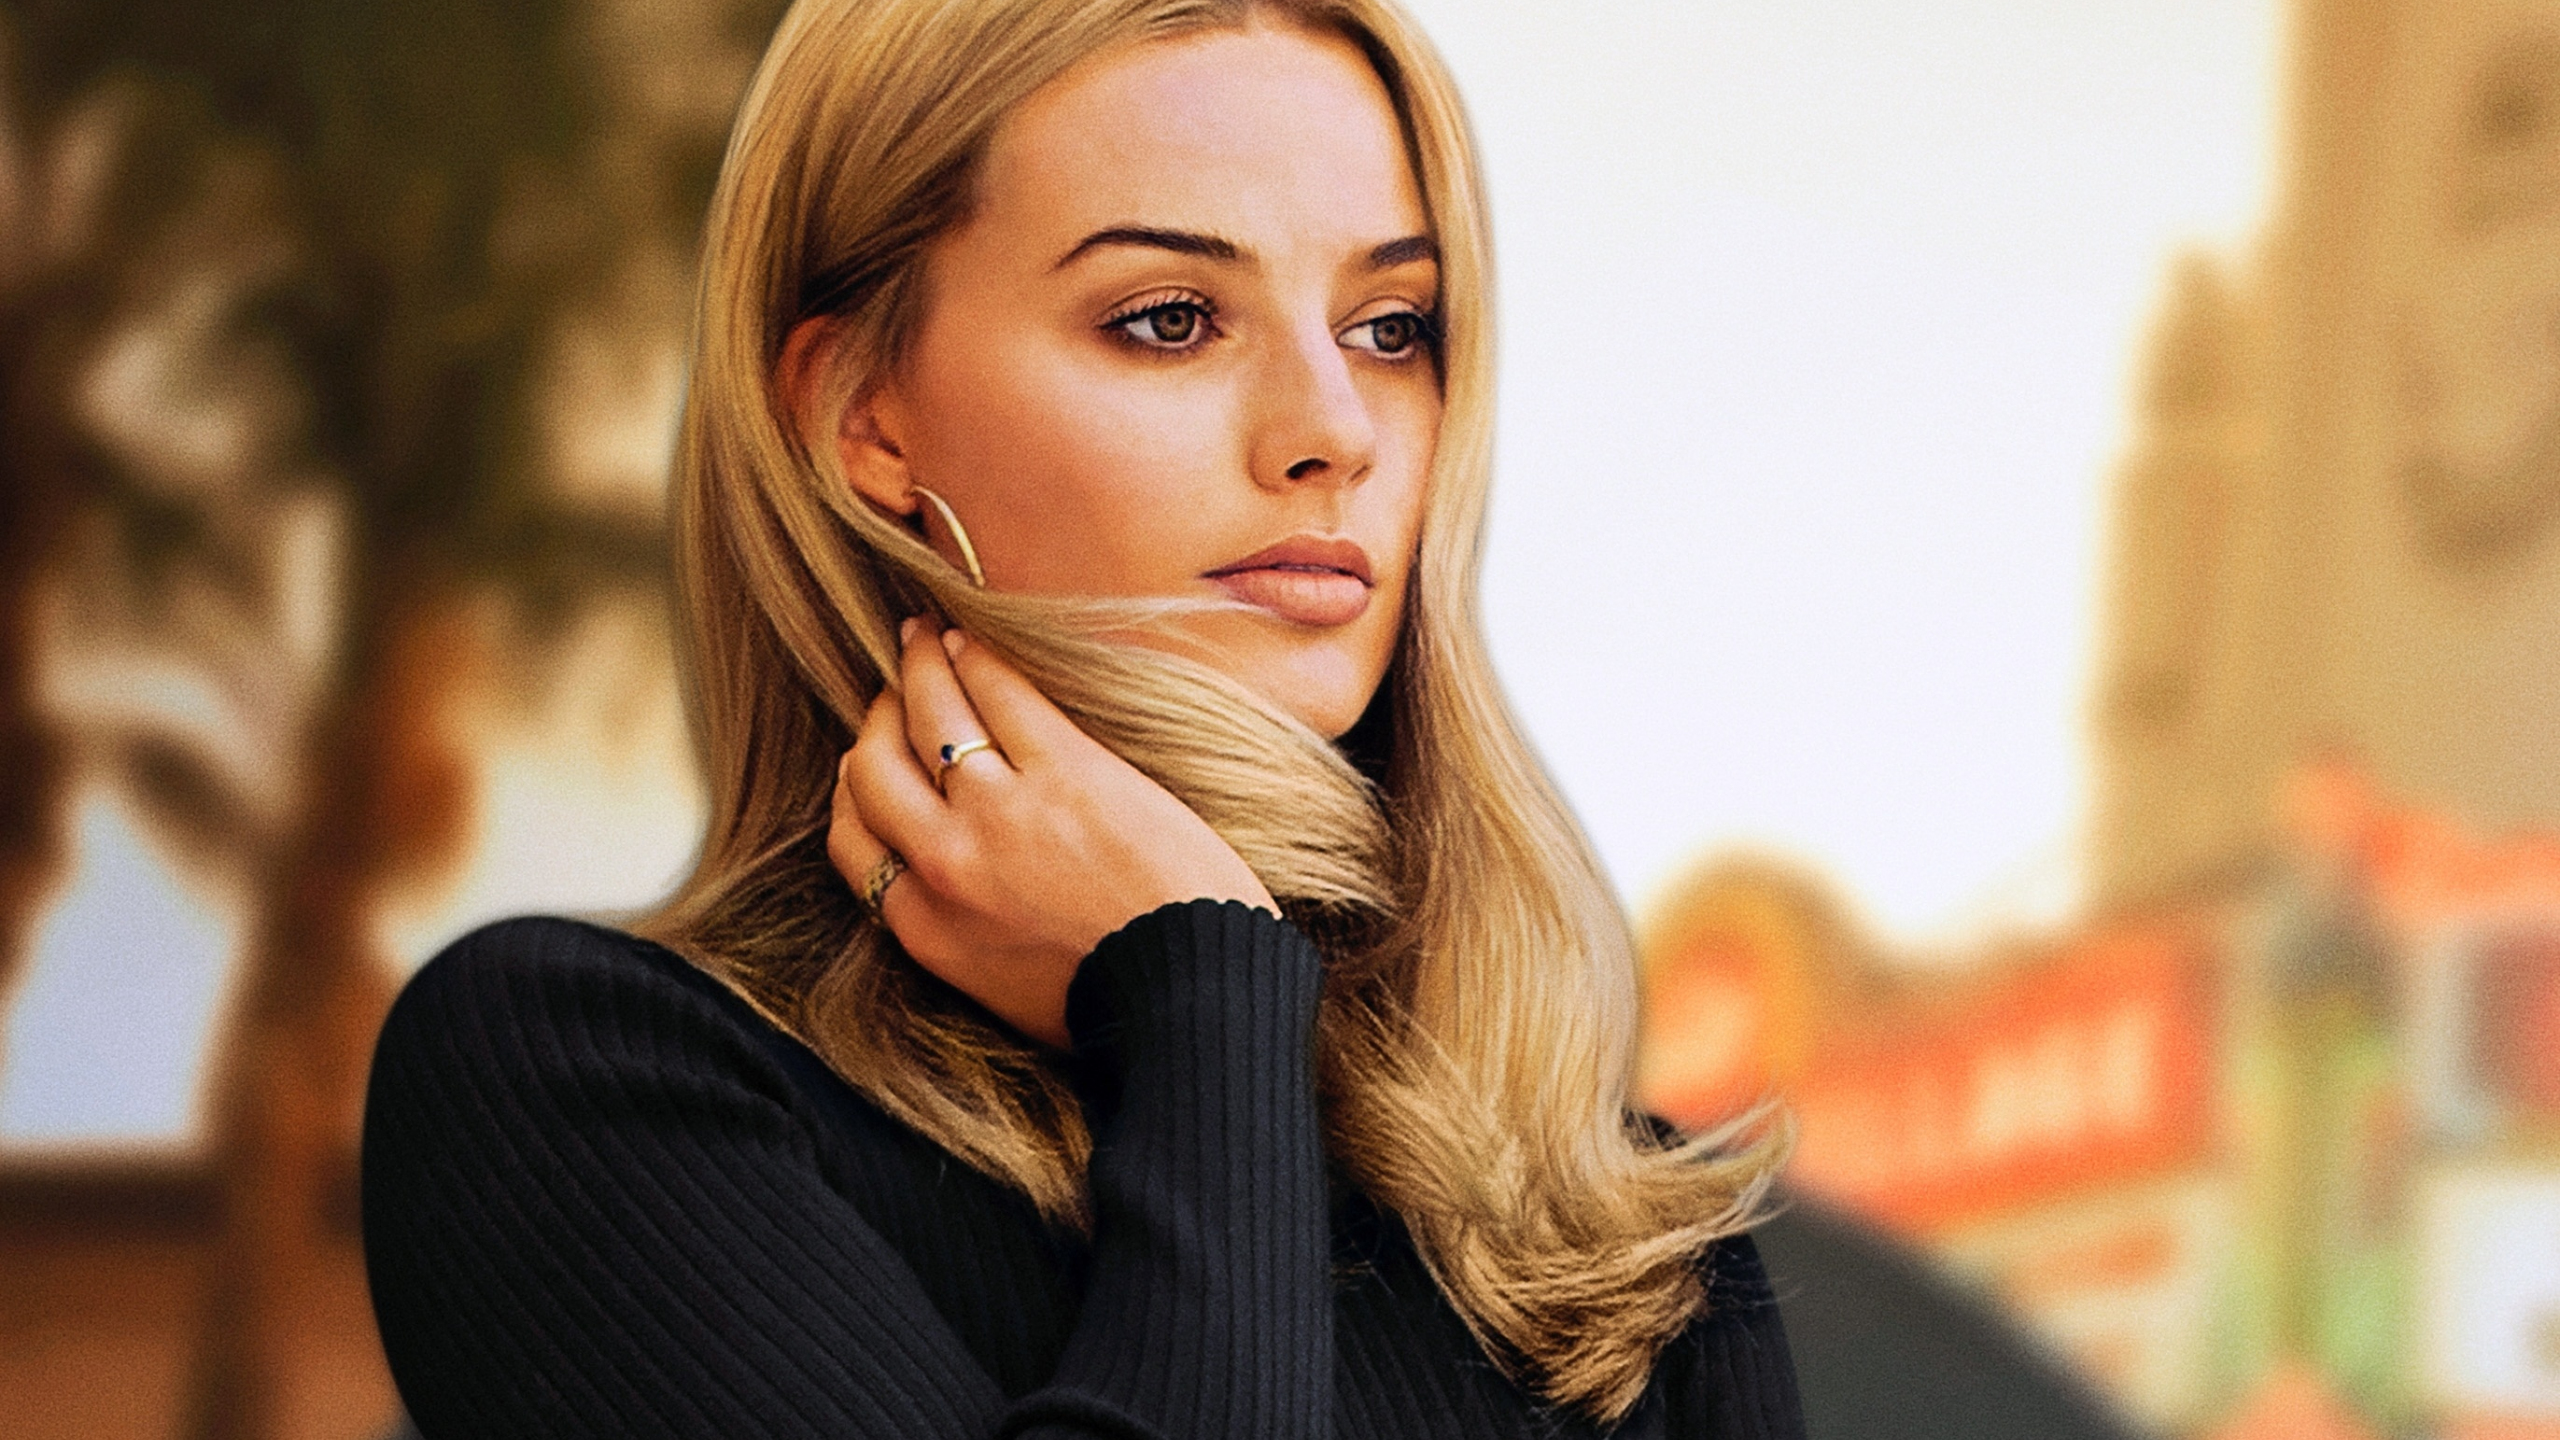 Download 2560x1440 Wallpaper Margot Robbie Once Upon A Time In